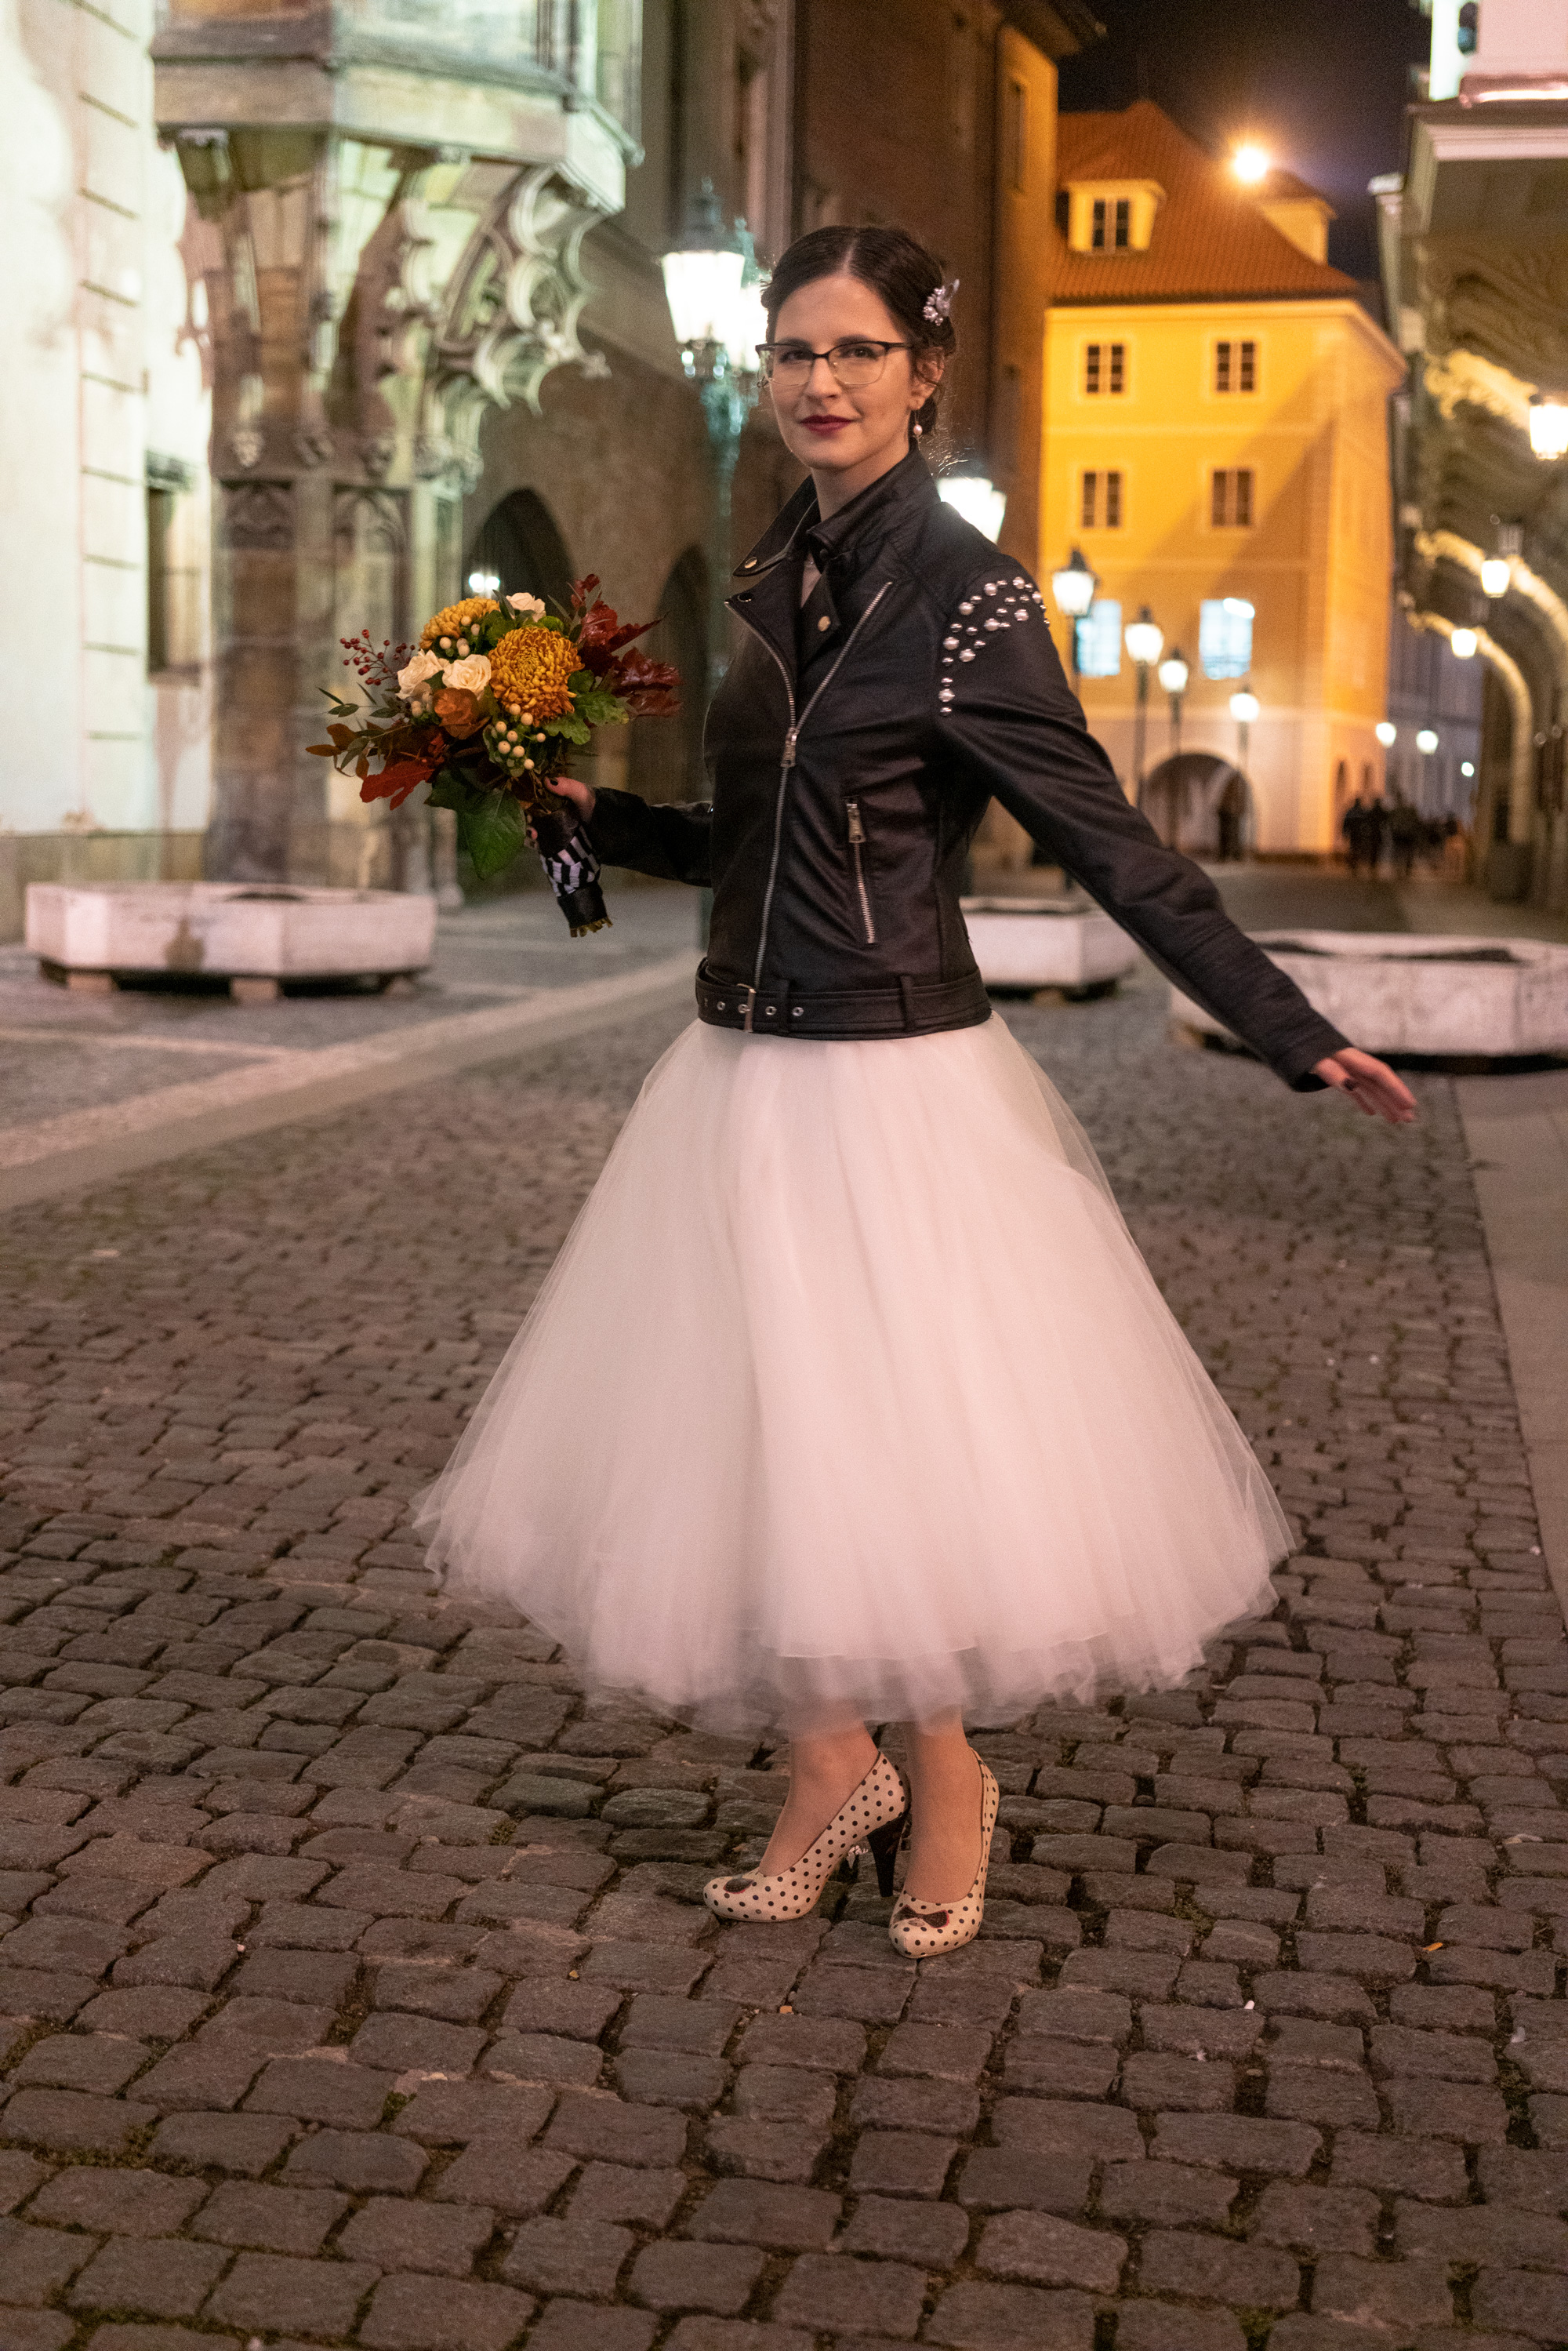 Tulle skirt with bride at night